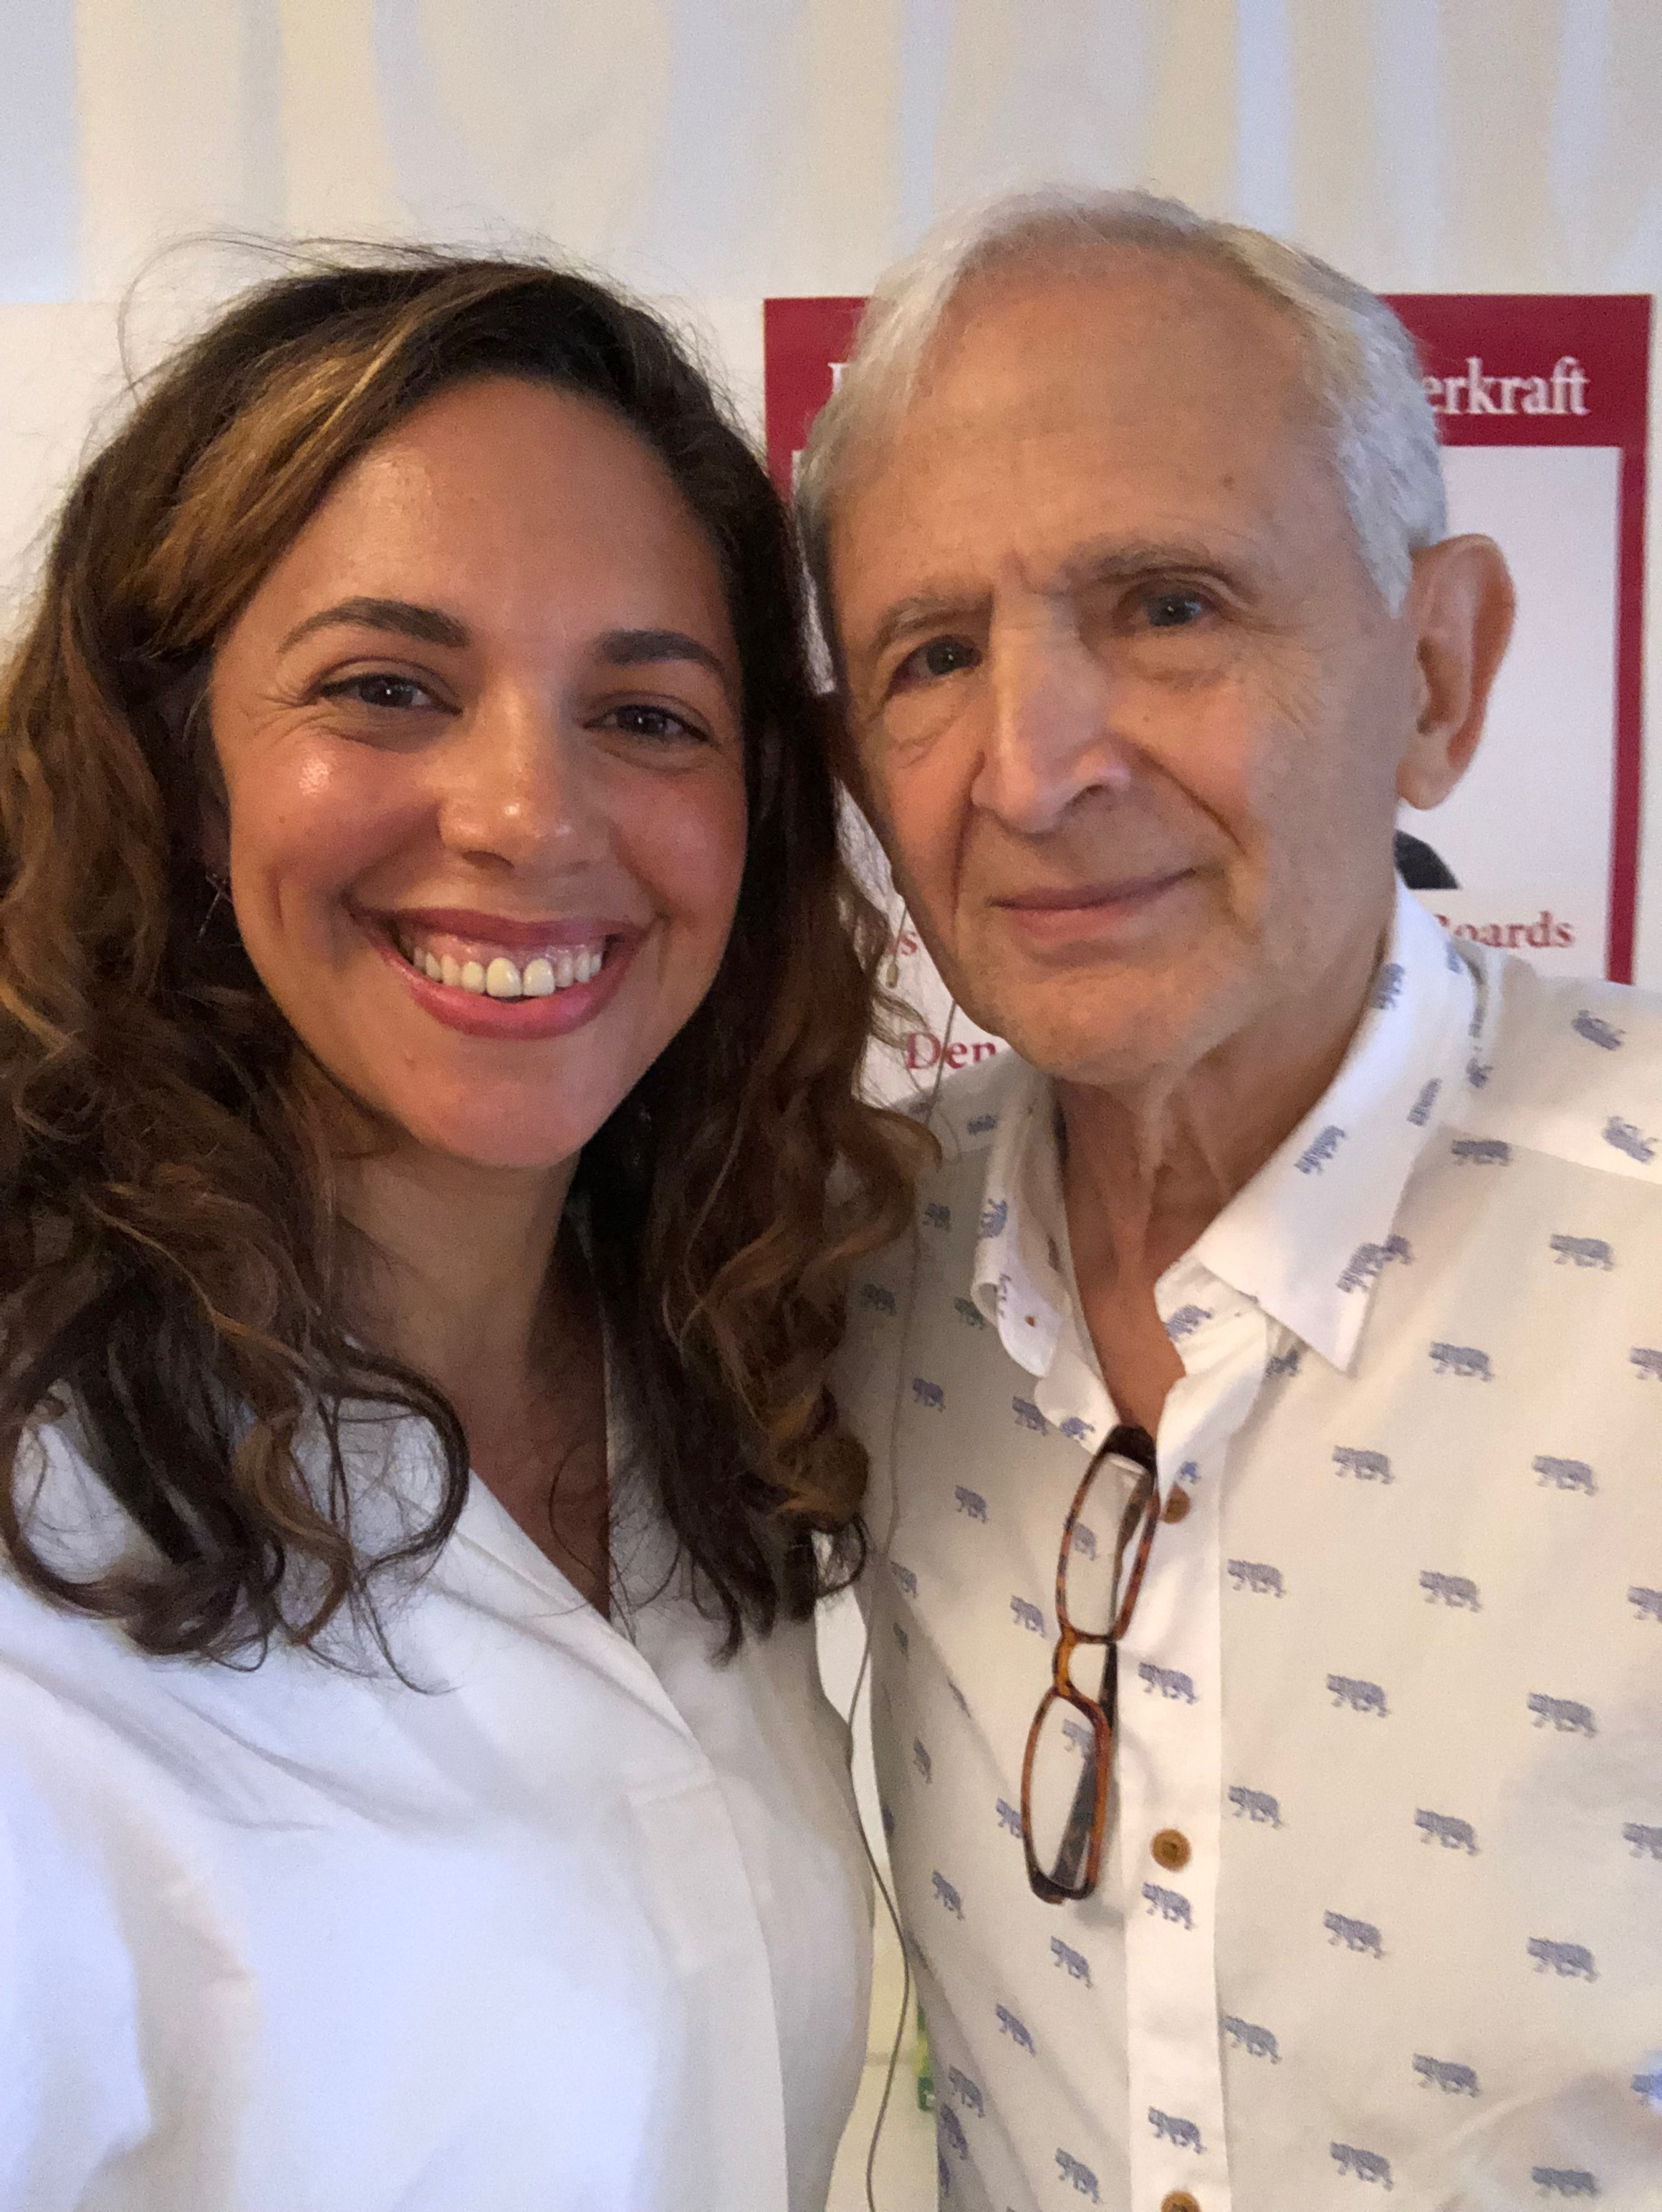 Me with Dr. Peter Levine, 2019 Masterclass